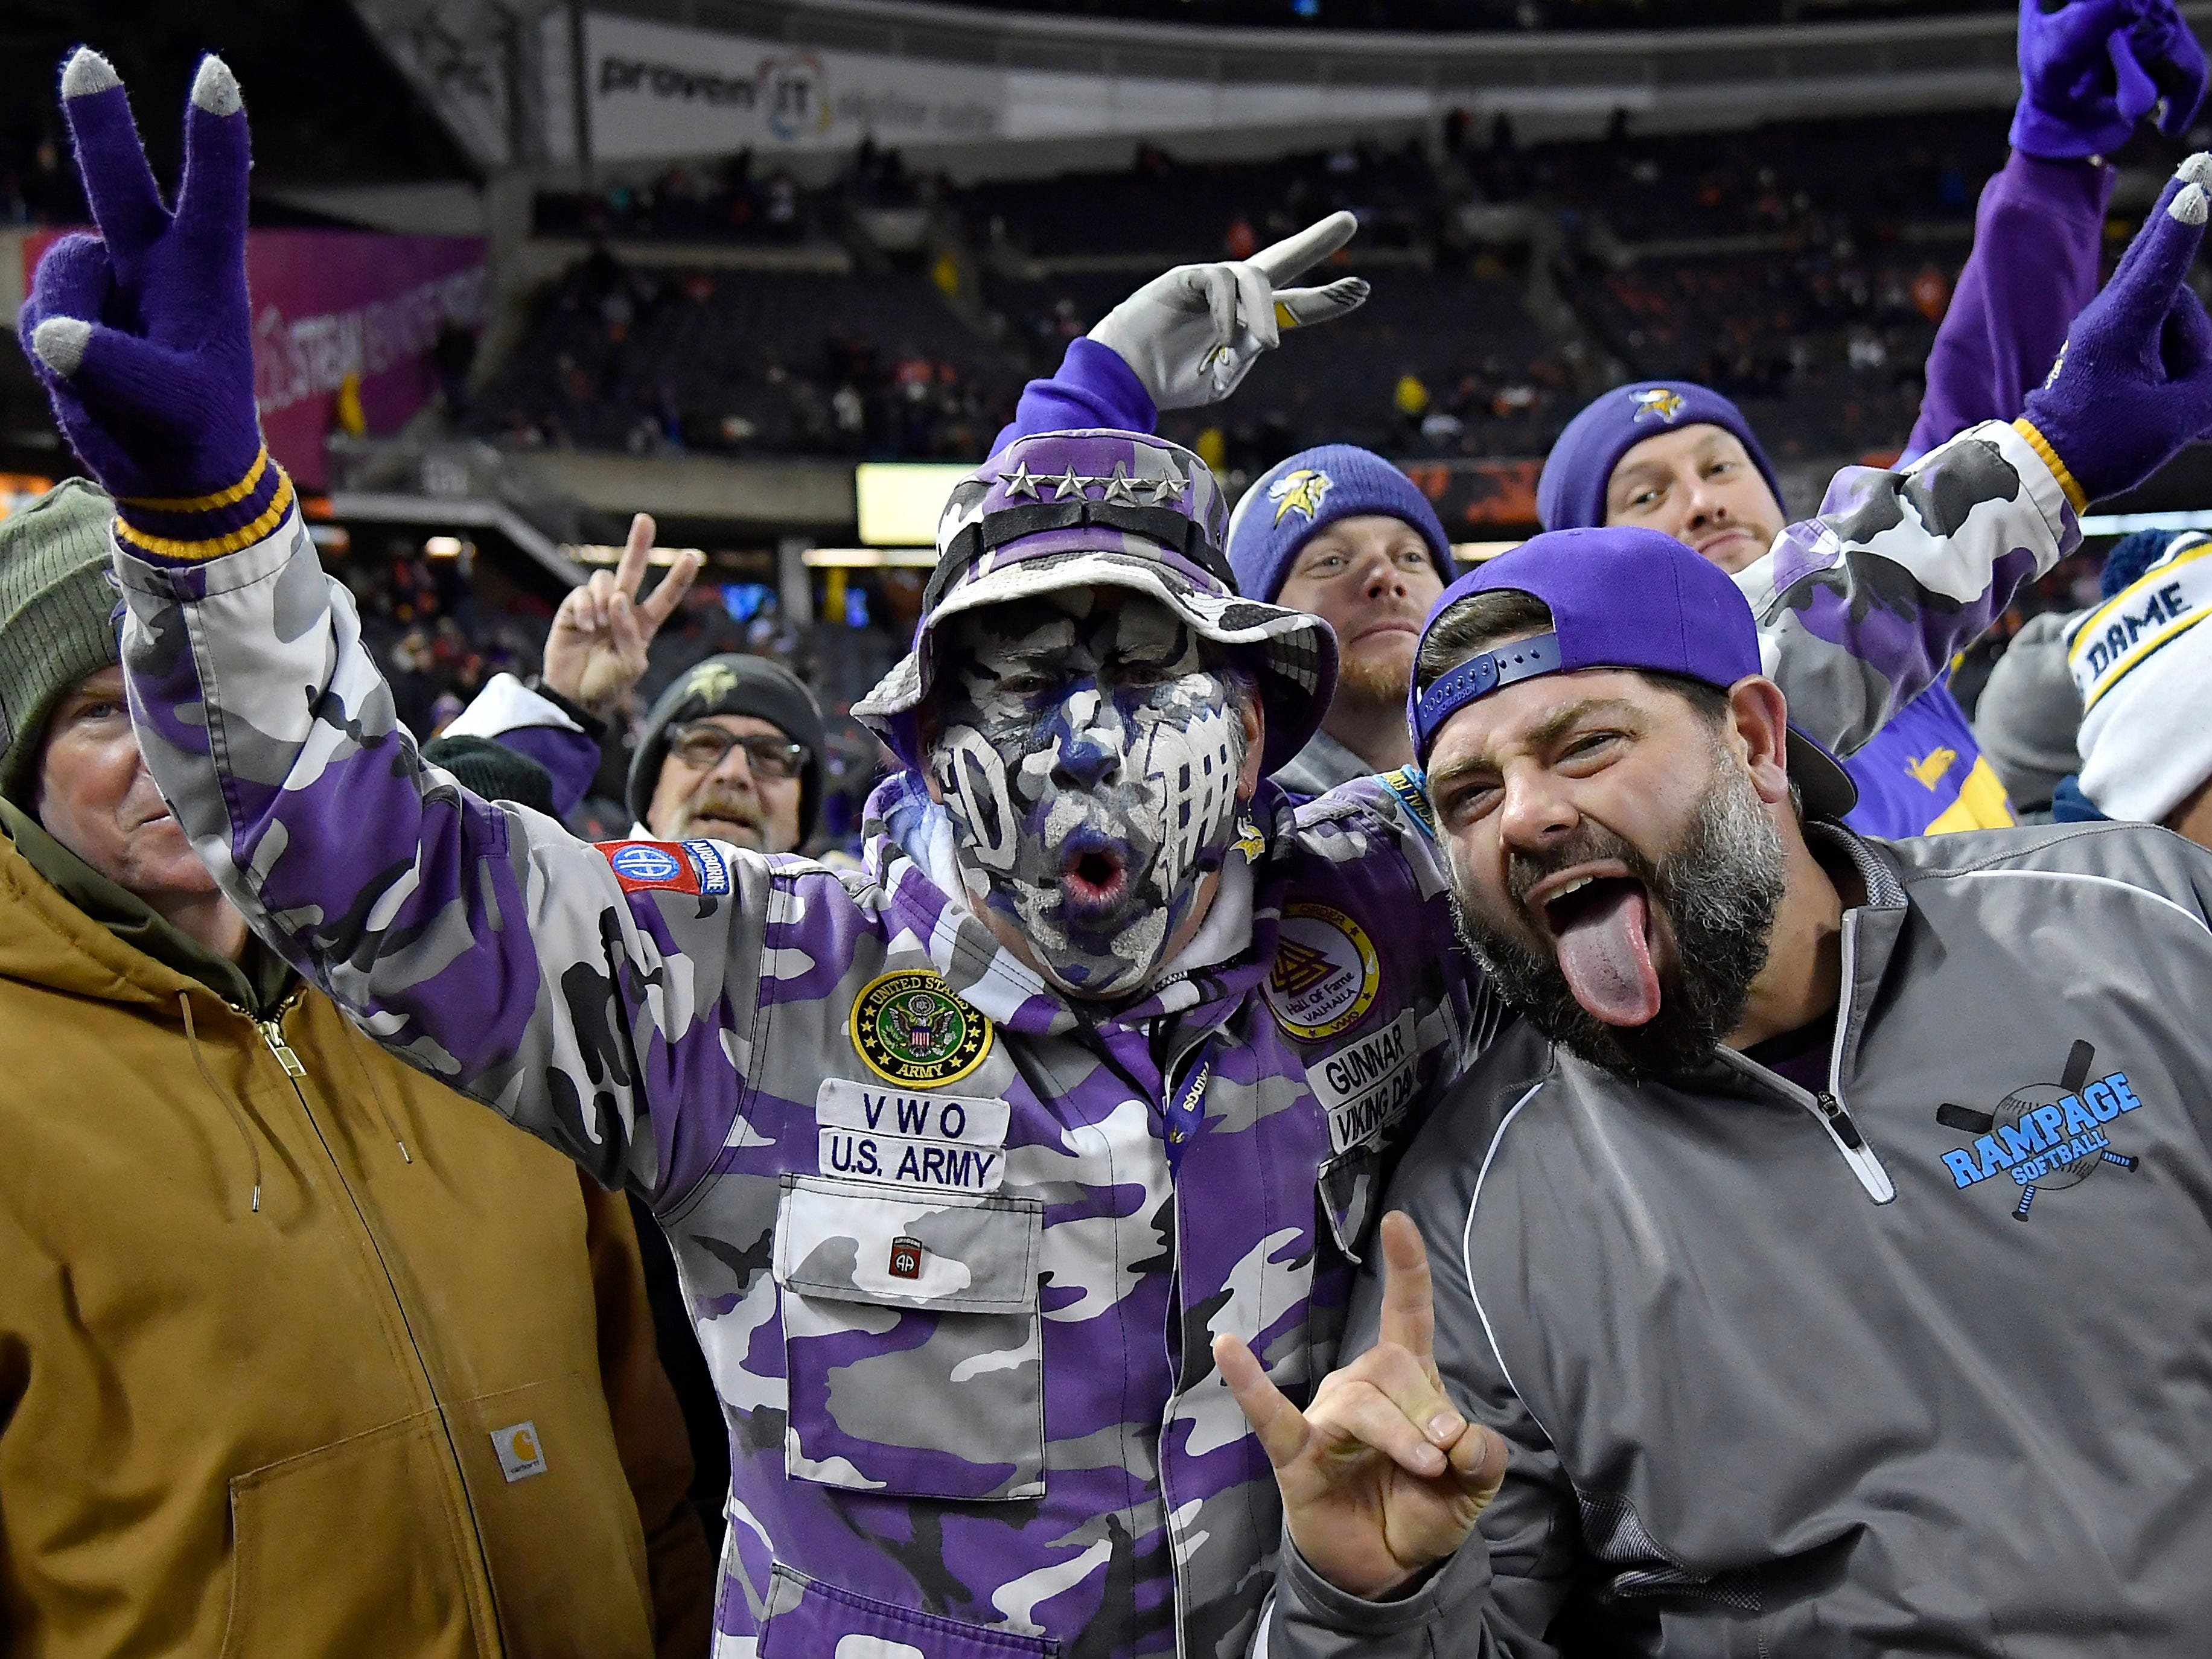 Minnesota Vikings fans cheer before the game between the Chicago Bears and the Minnesota Vikings at Soldier Field.